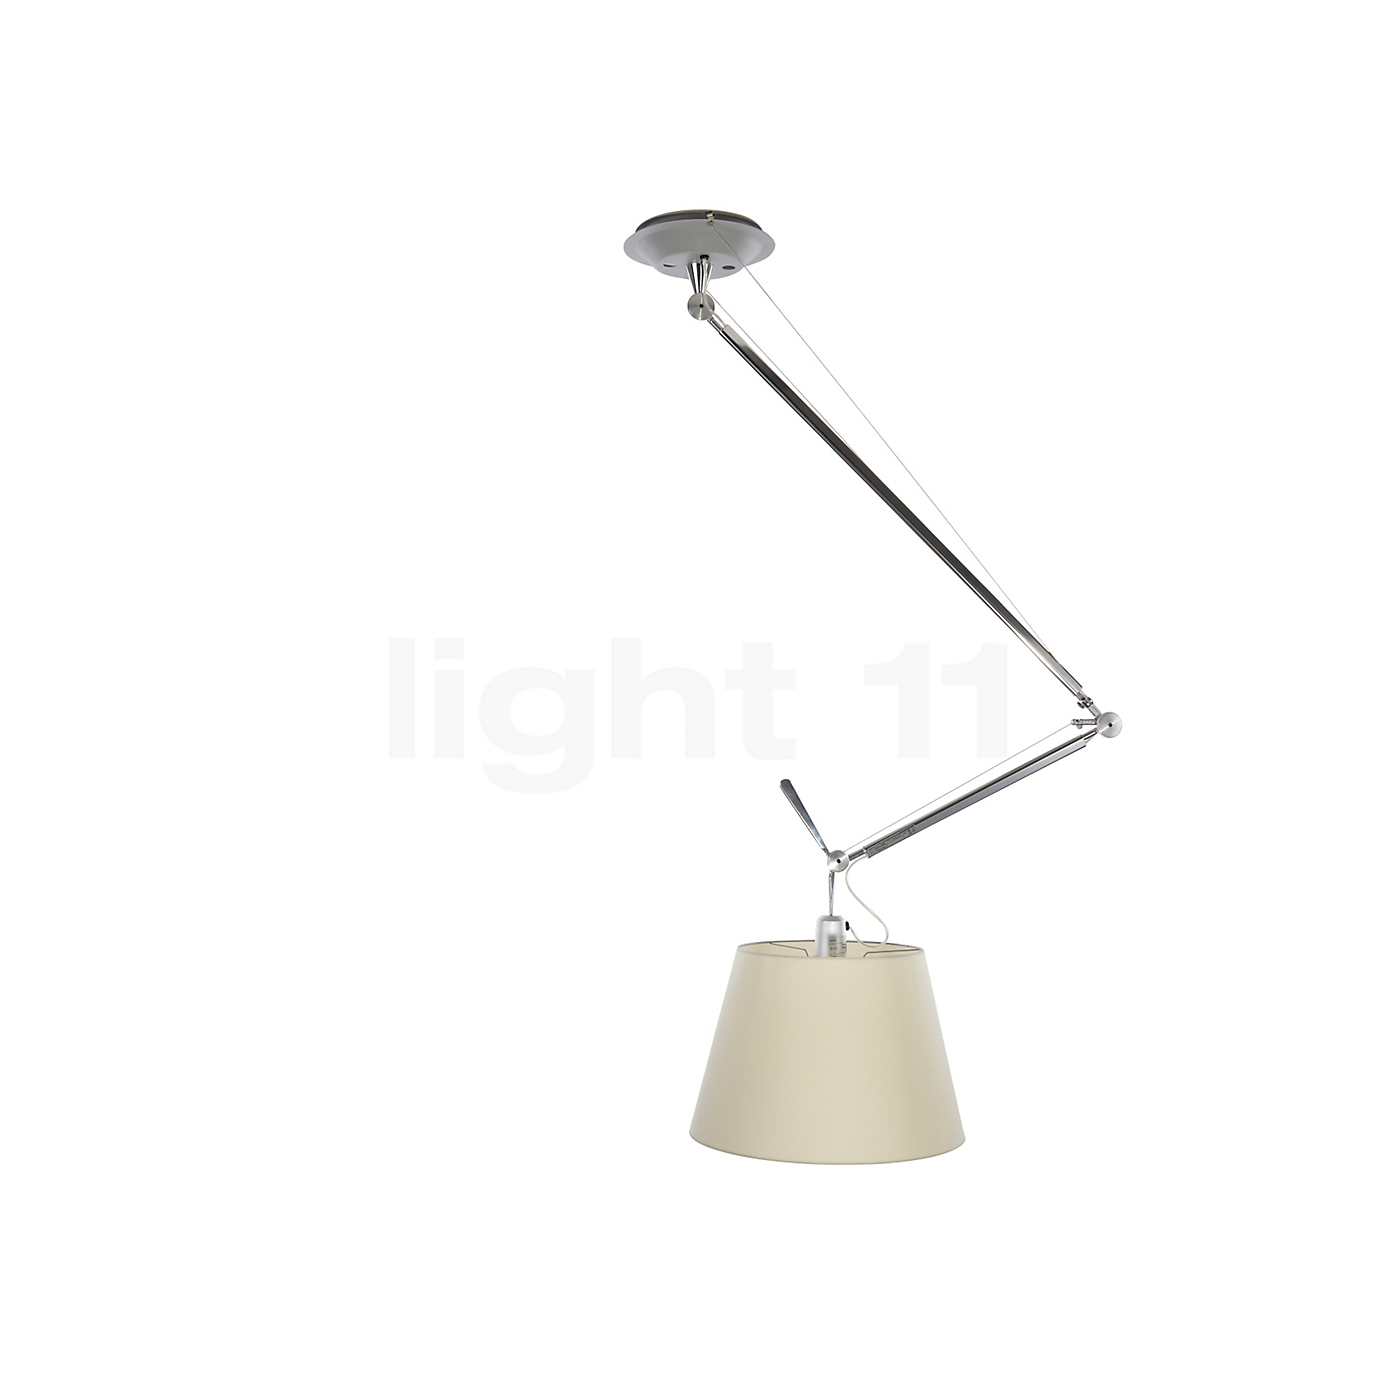 Artemide Tolomeo Sospensione Decentrata - Pendant lights - lamps & lights - light11.eu